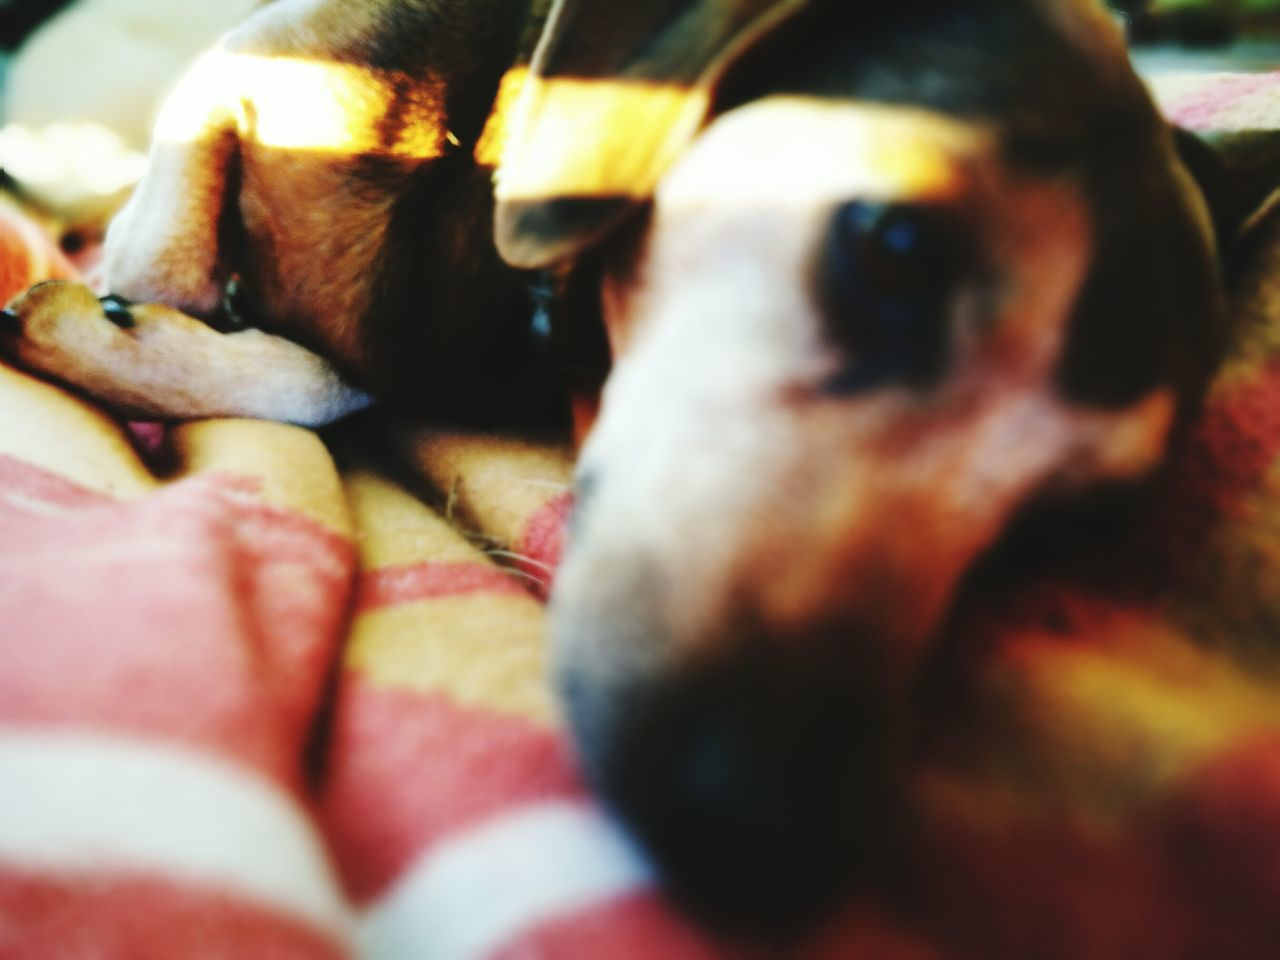 pets, dog, domestic animals, one animal, animal themes, mammal, indoors, selective focus, no people, close-up, bed, day